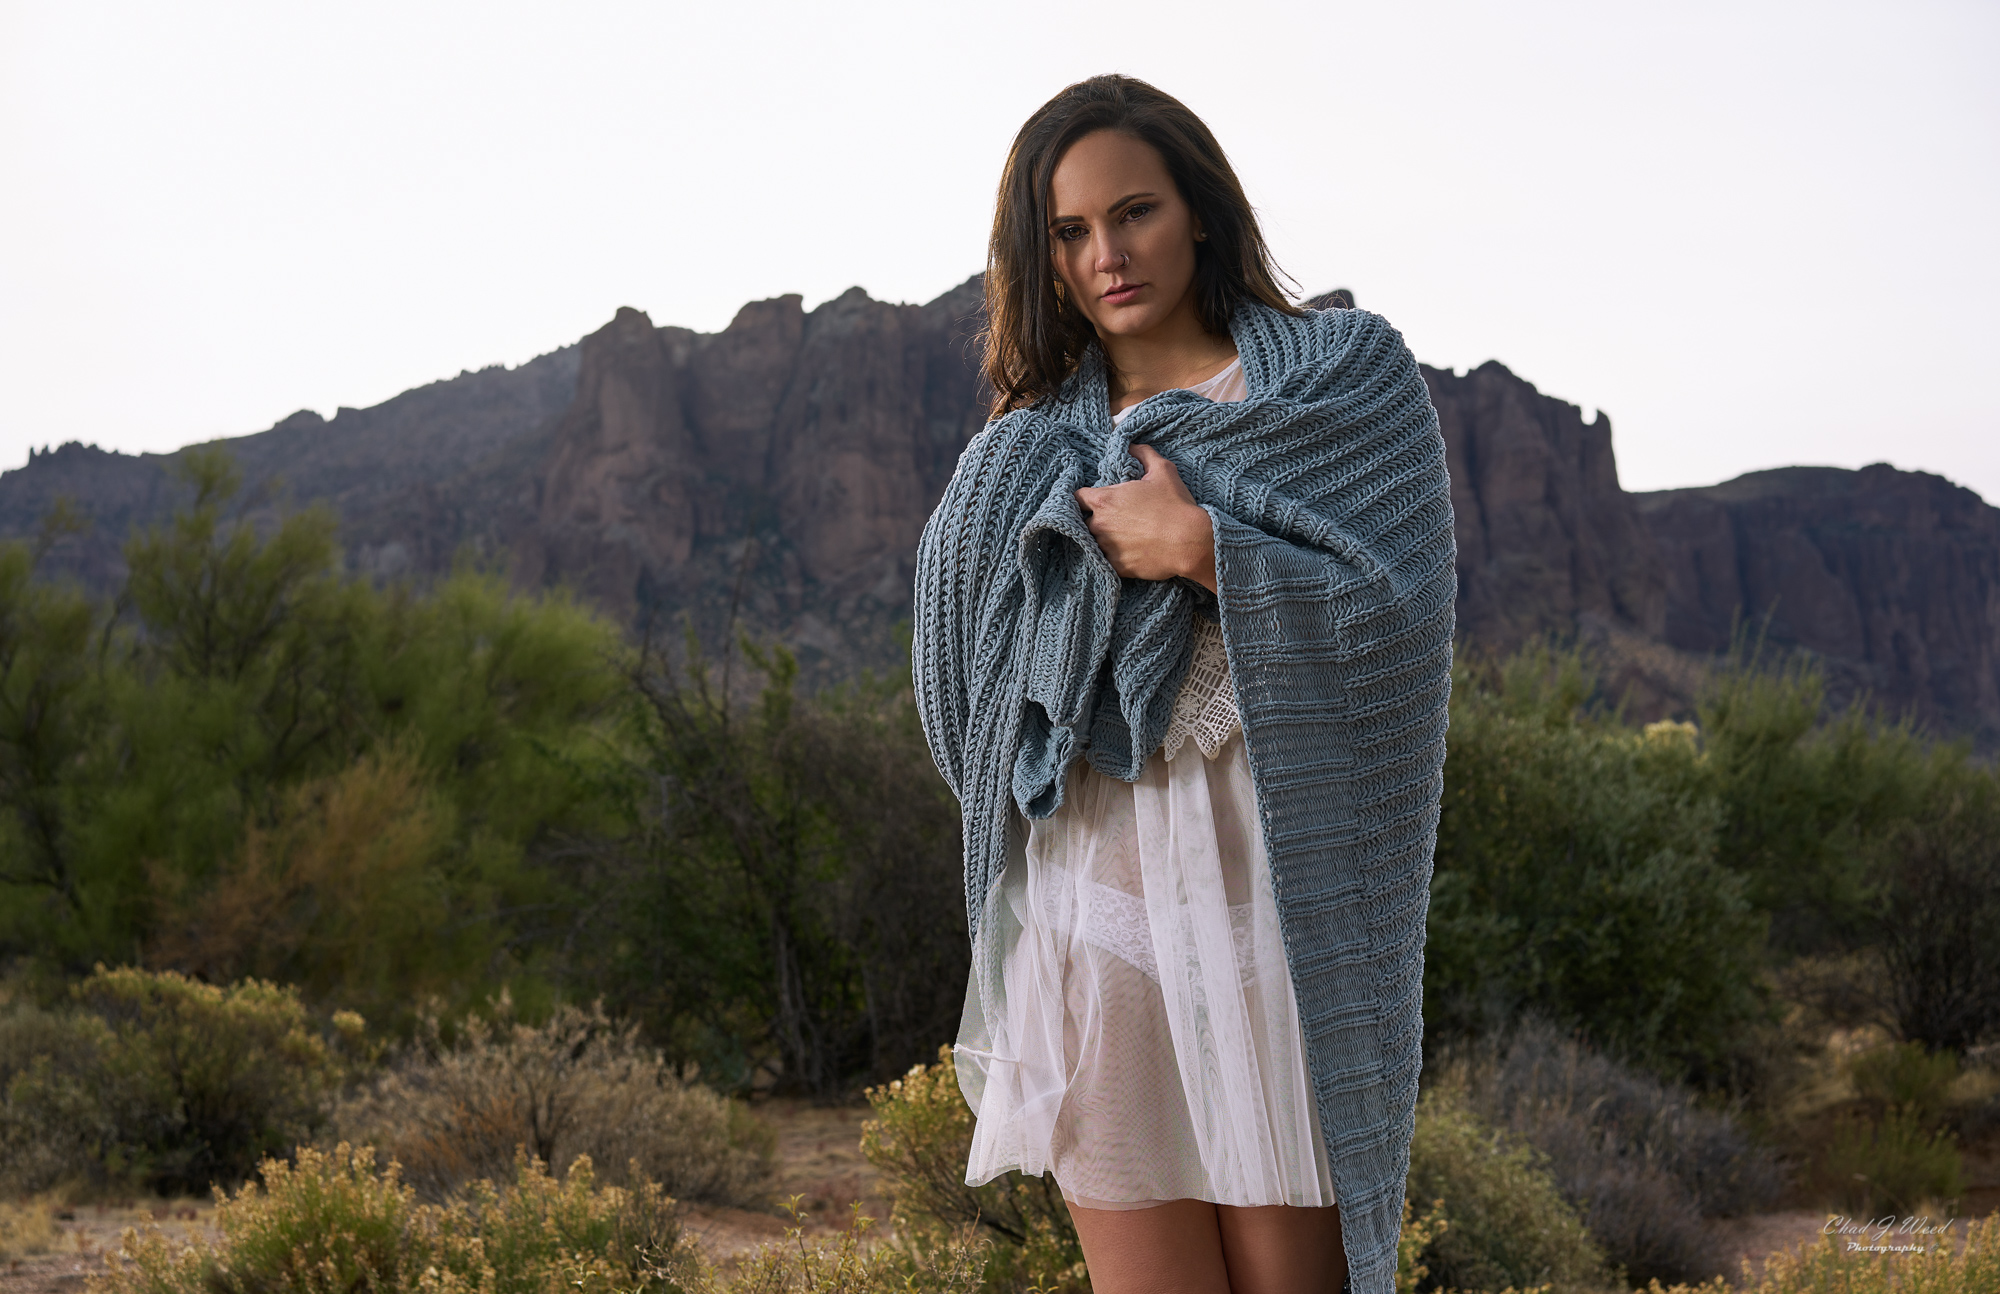 Erica's Boudior Shoot at Superstition Mountains by Mesa Arizona Portrait Photographer Chad Weed